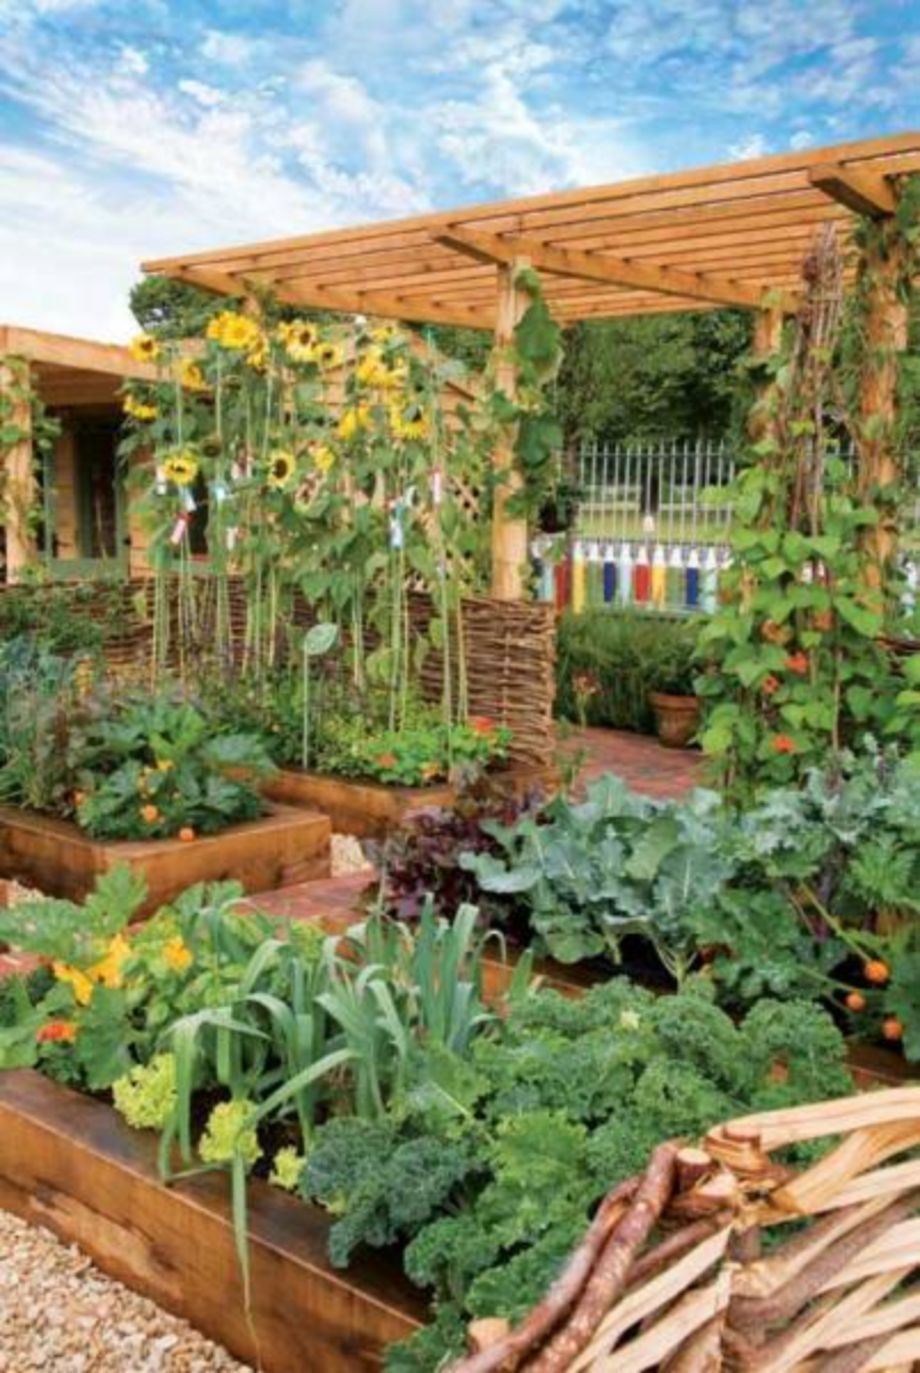 35 Cute and Simple School Garden Design Ideas | Vegetable ...